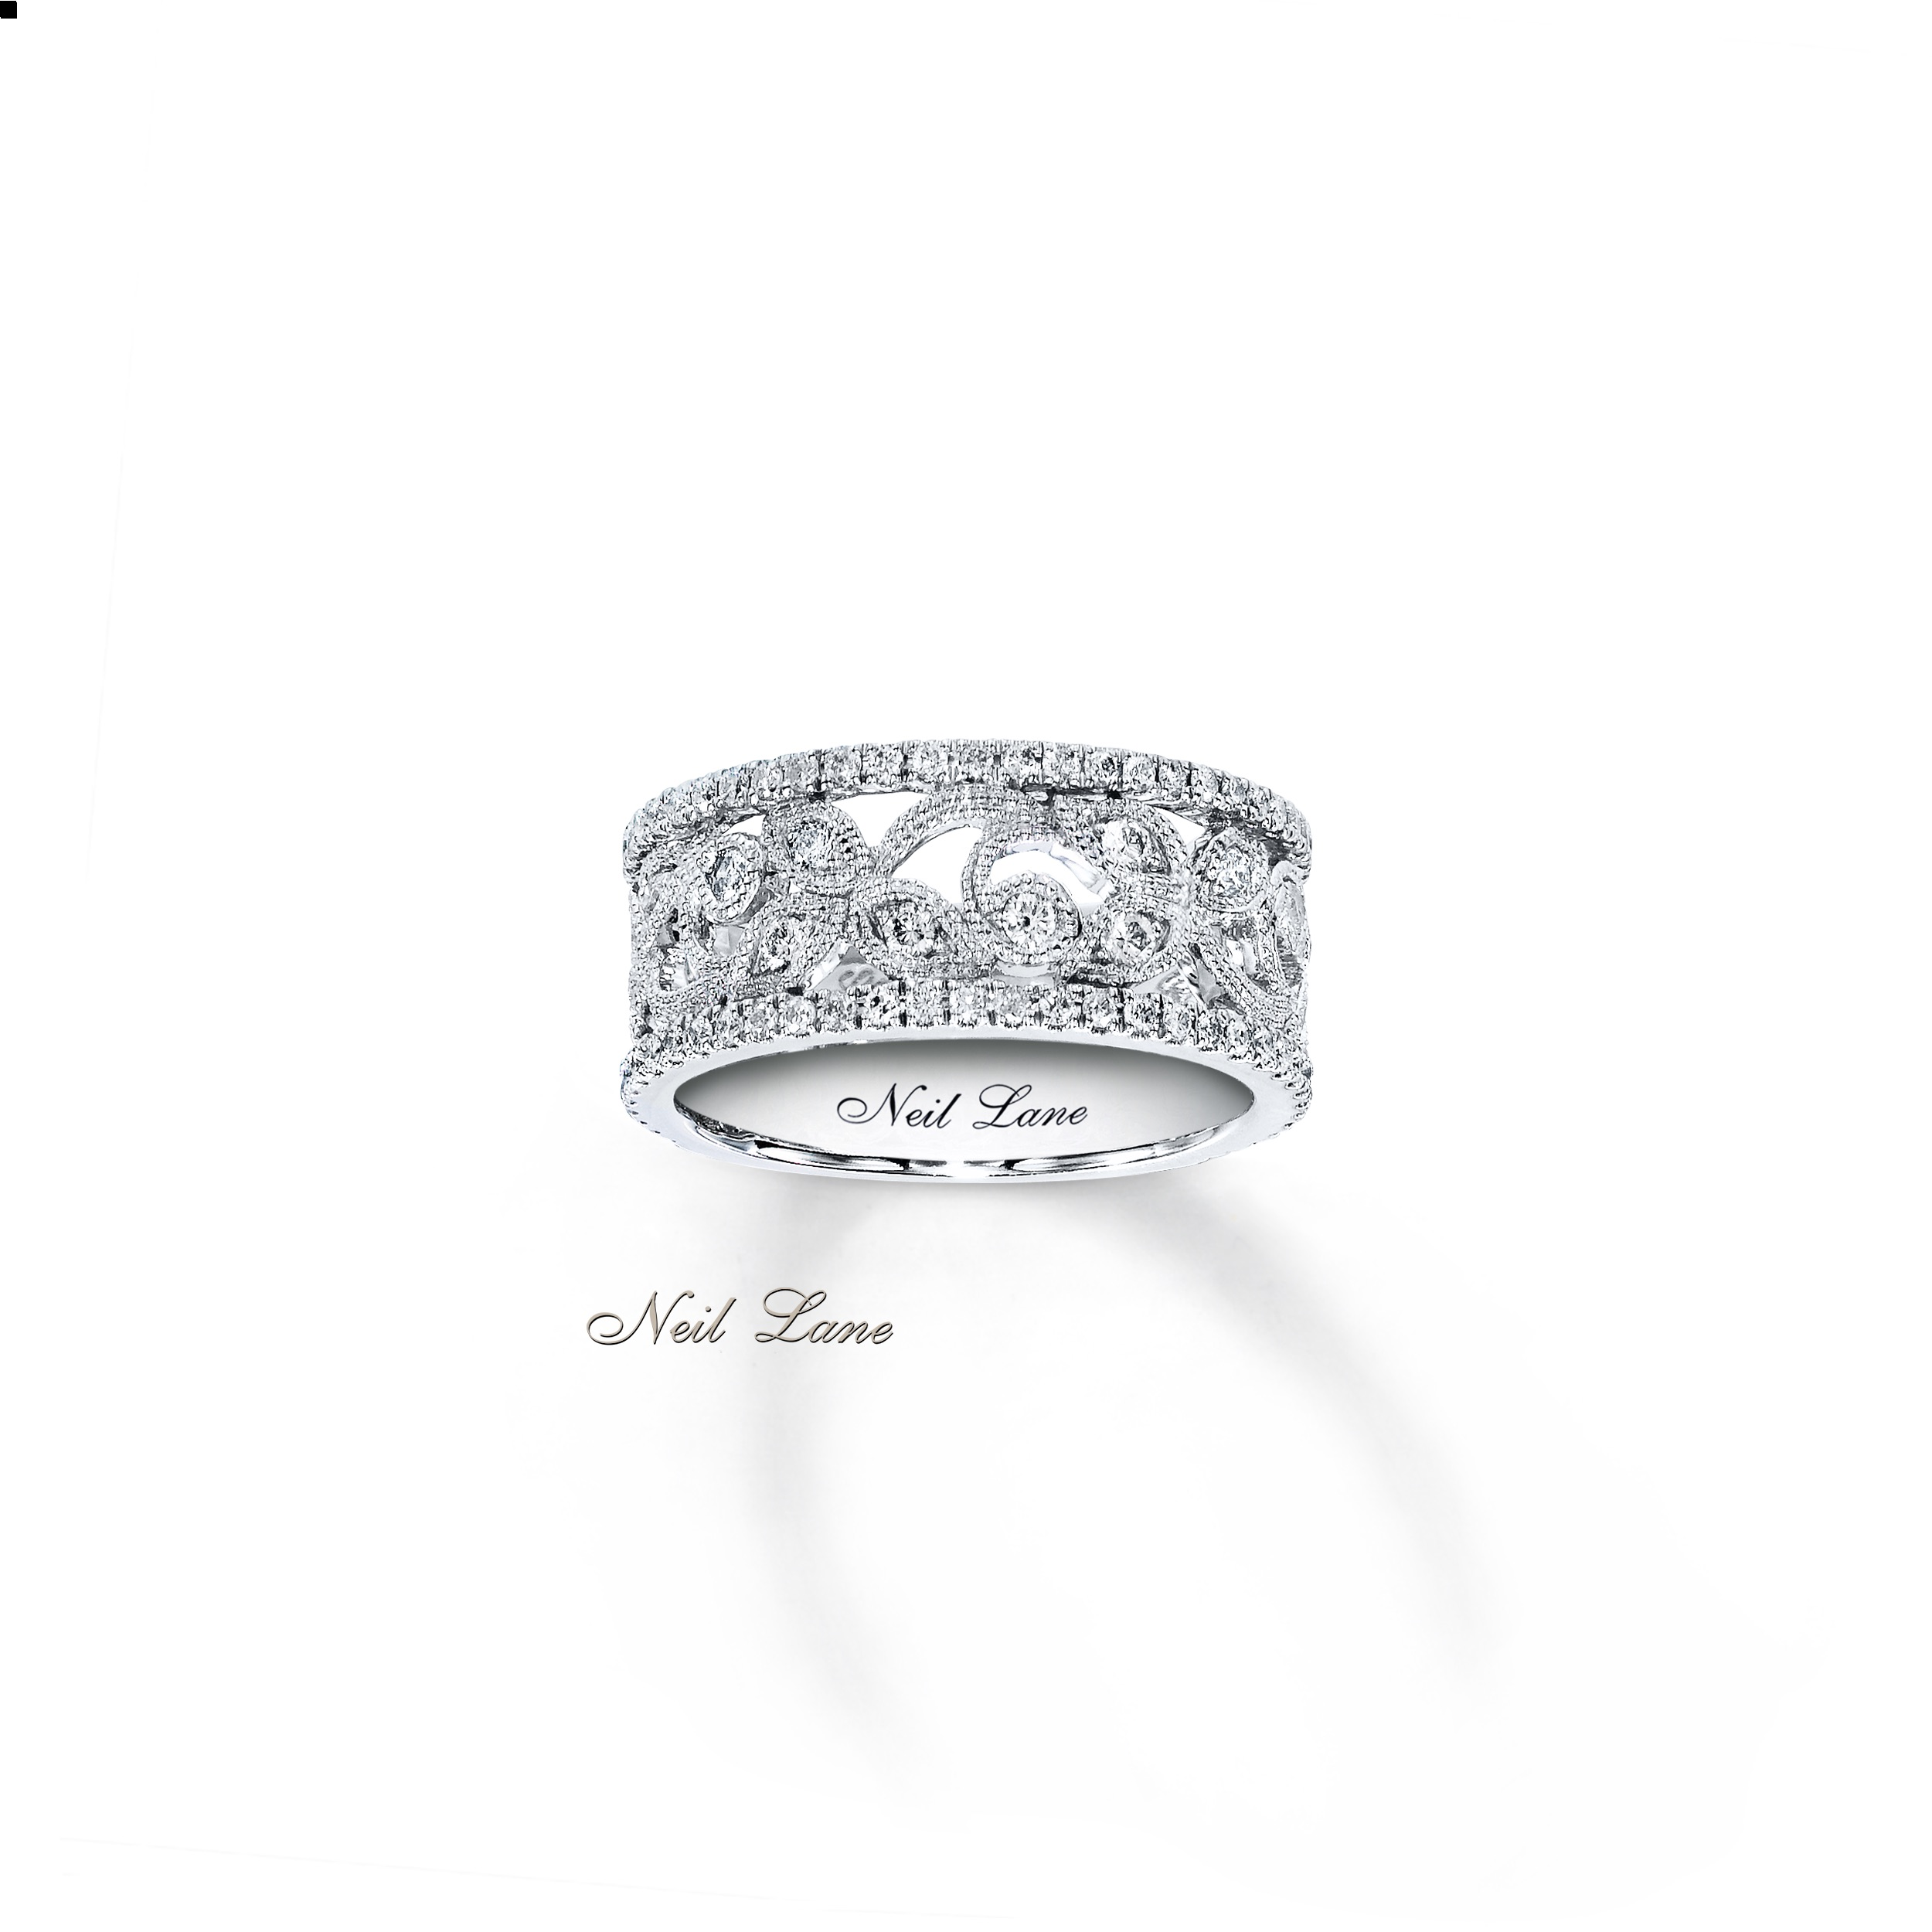 ngagmnt diamond platum lane rose prices halo carat engagement doubl rings neil price tiffany cut ring gold cushion